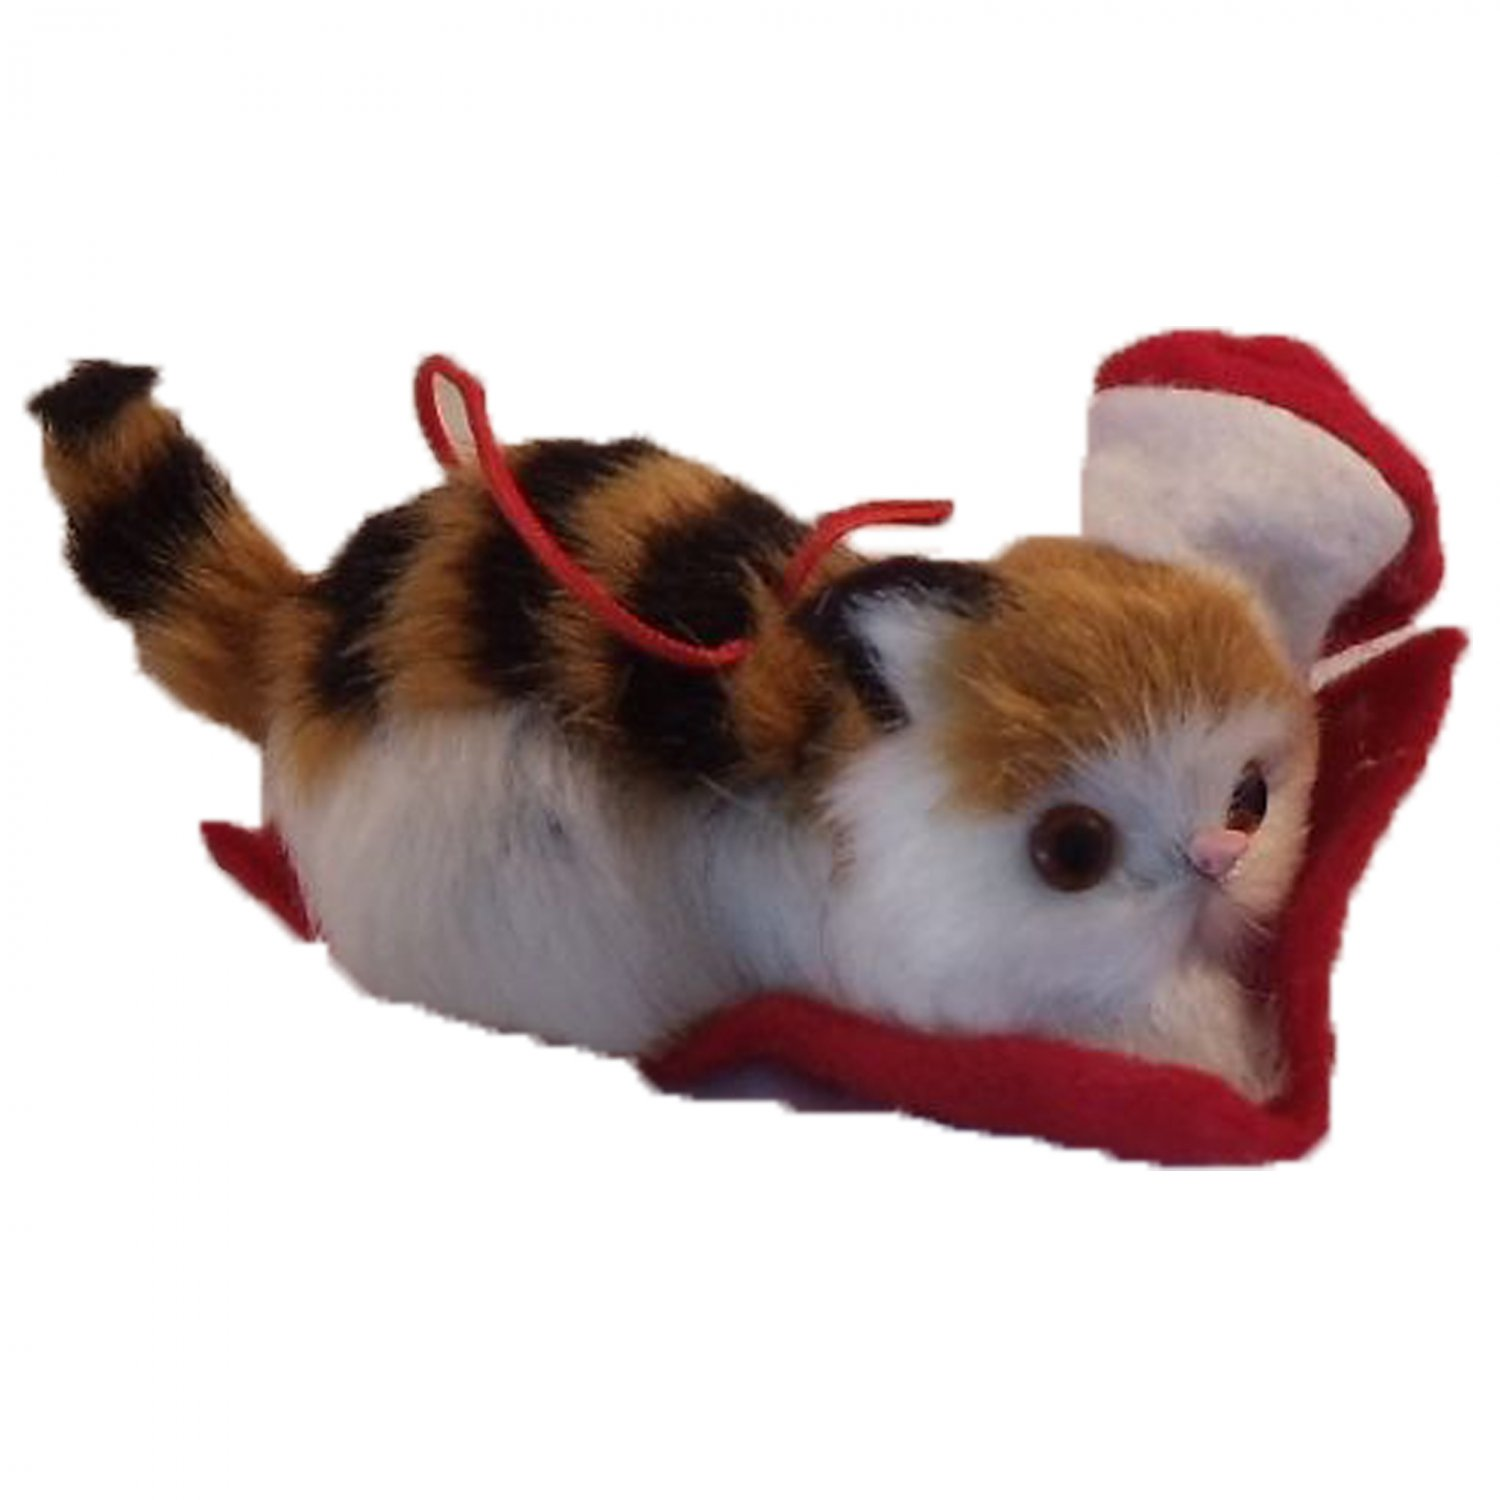 Hallmark Purrfect Kitten In Santa Hat Hanging Holiday Ornament Brown Cat